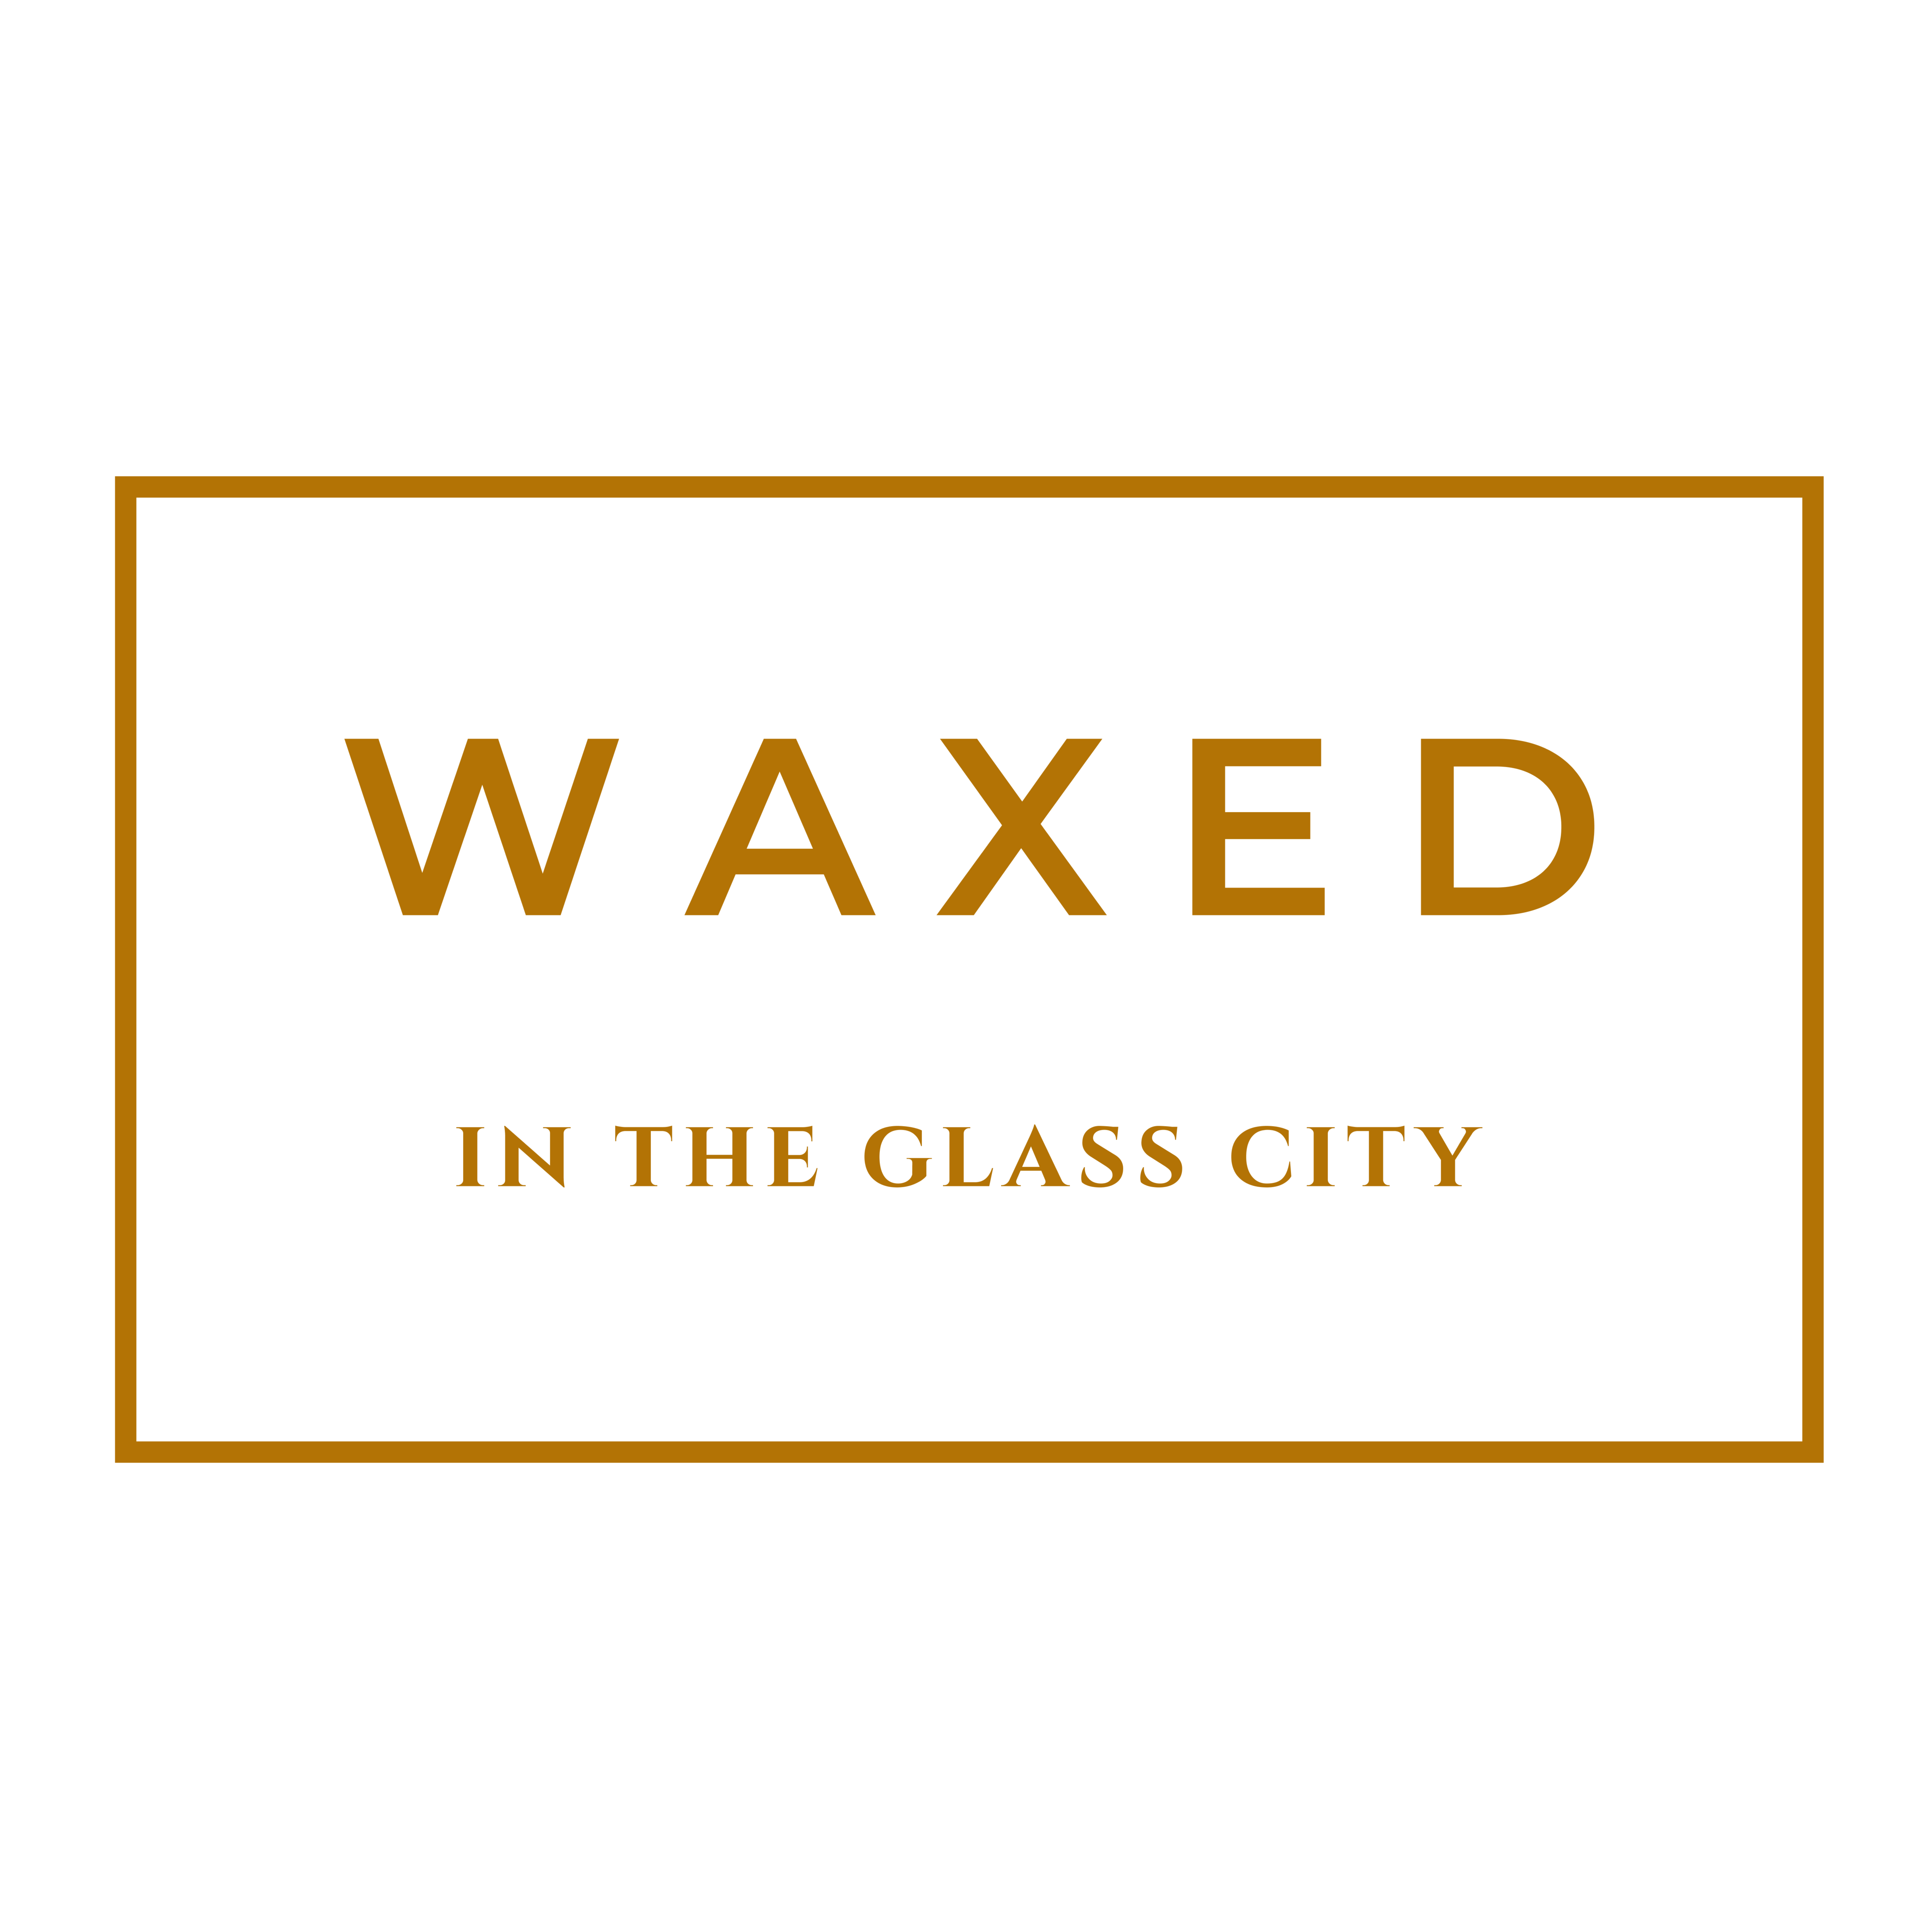 WAXED in the glass city